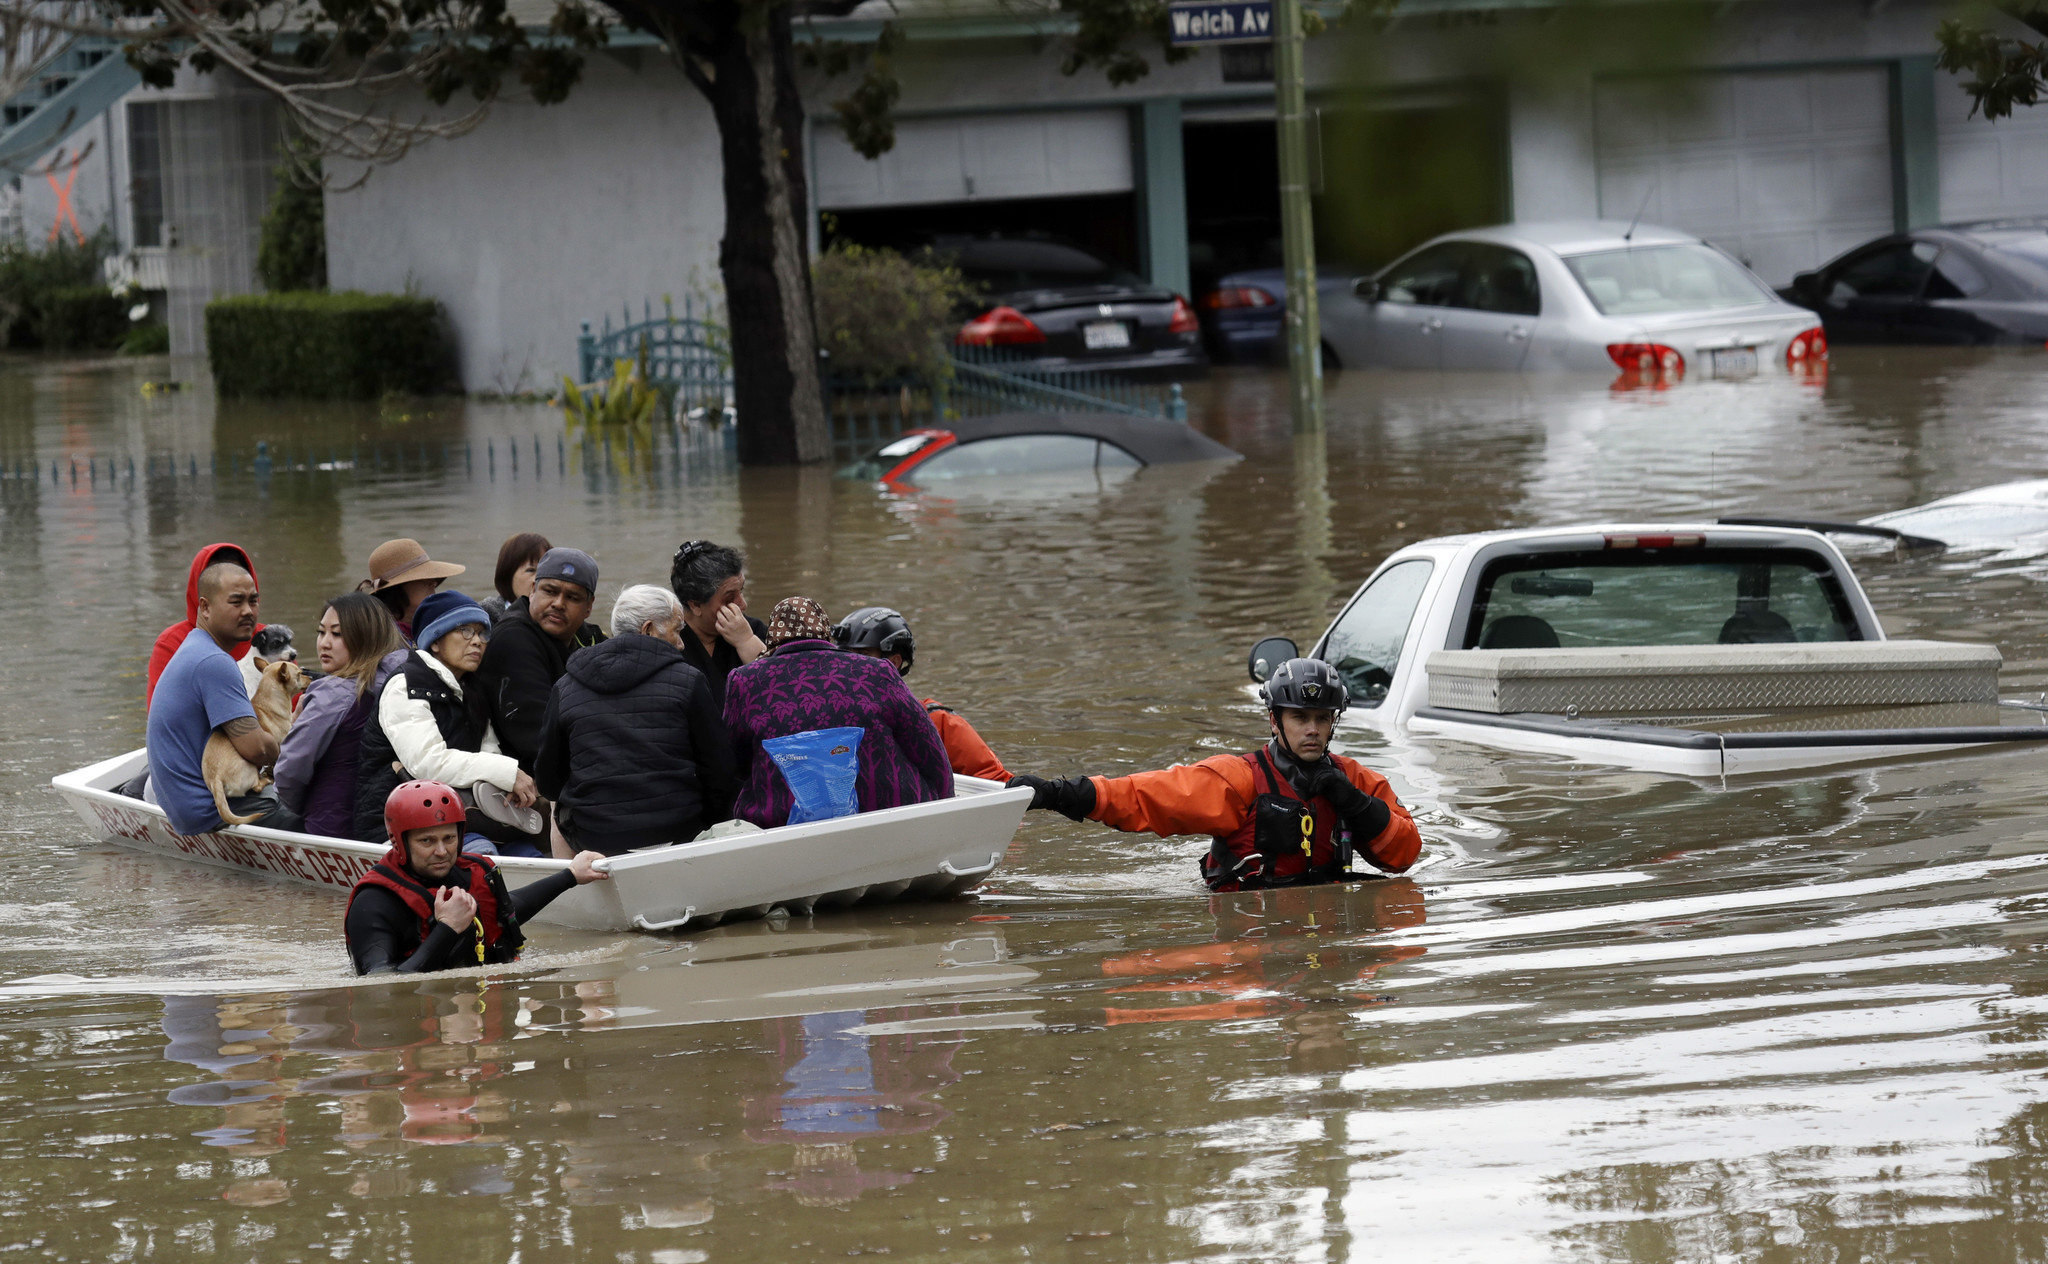 Flood Zone Maps By Address, Hit By Worst Floods In A Century San Jose Got Little Warning Of Impending Disaster La Times, Flood Zone Maps By Address